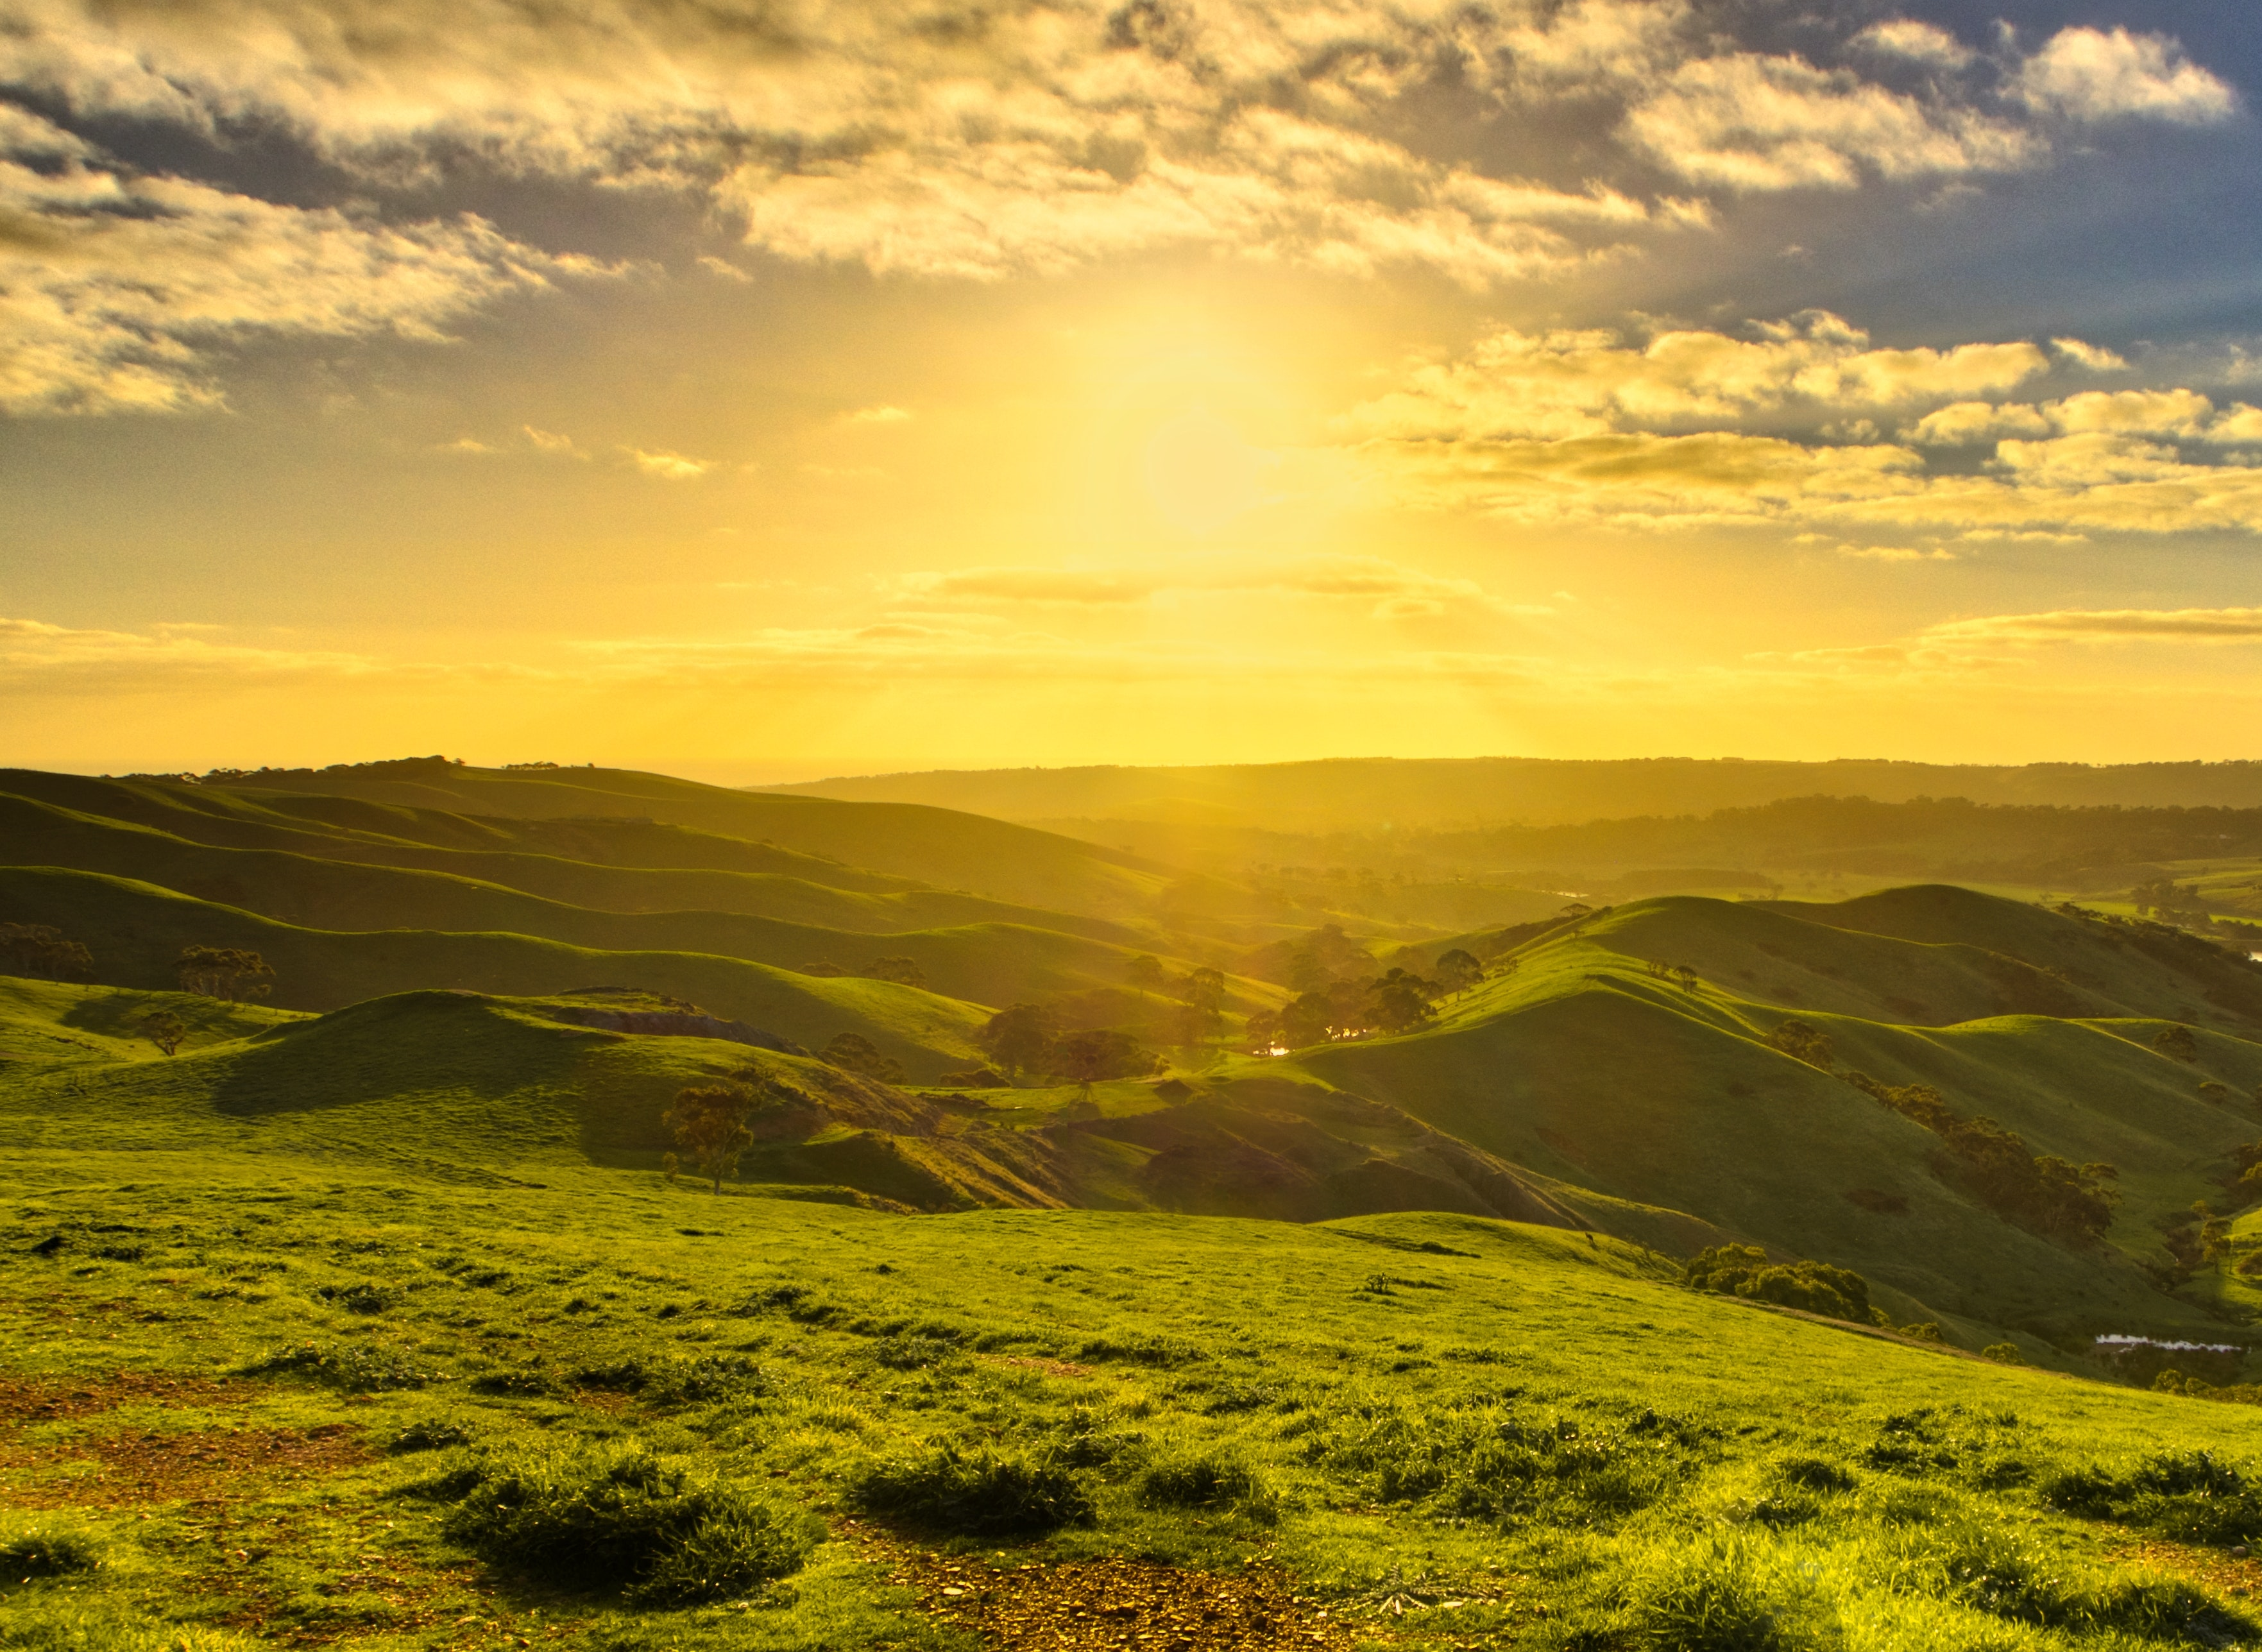 landscape-photography-of-green-mountains-910411 image